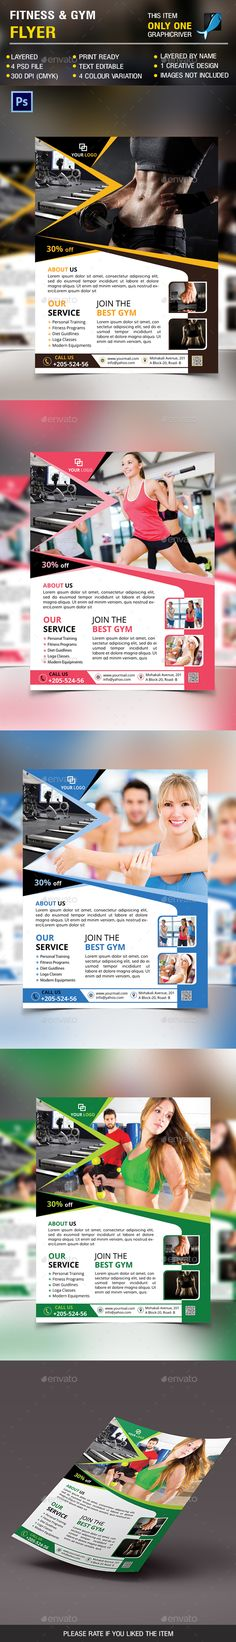 #Fitness & #Gym #Flyer - Sports #Events Download here: https://graphicriver.net/item/fitness-gym-flyer/14326246?ref=alena994